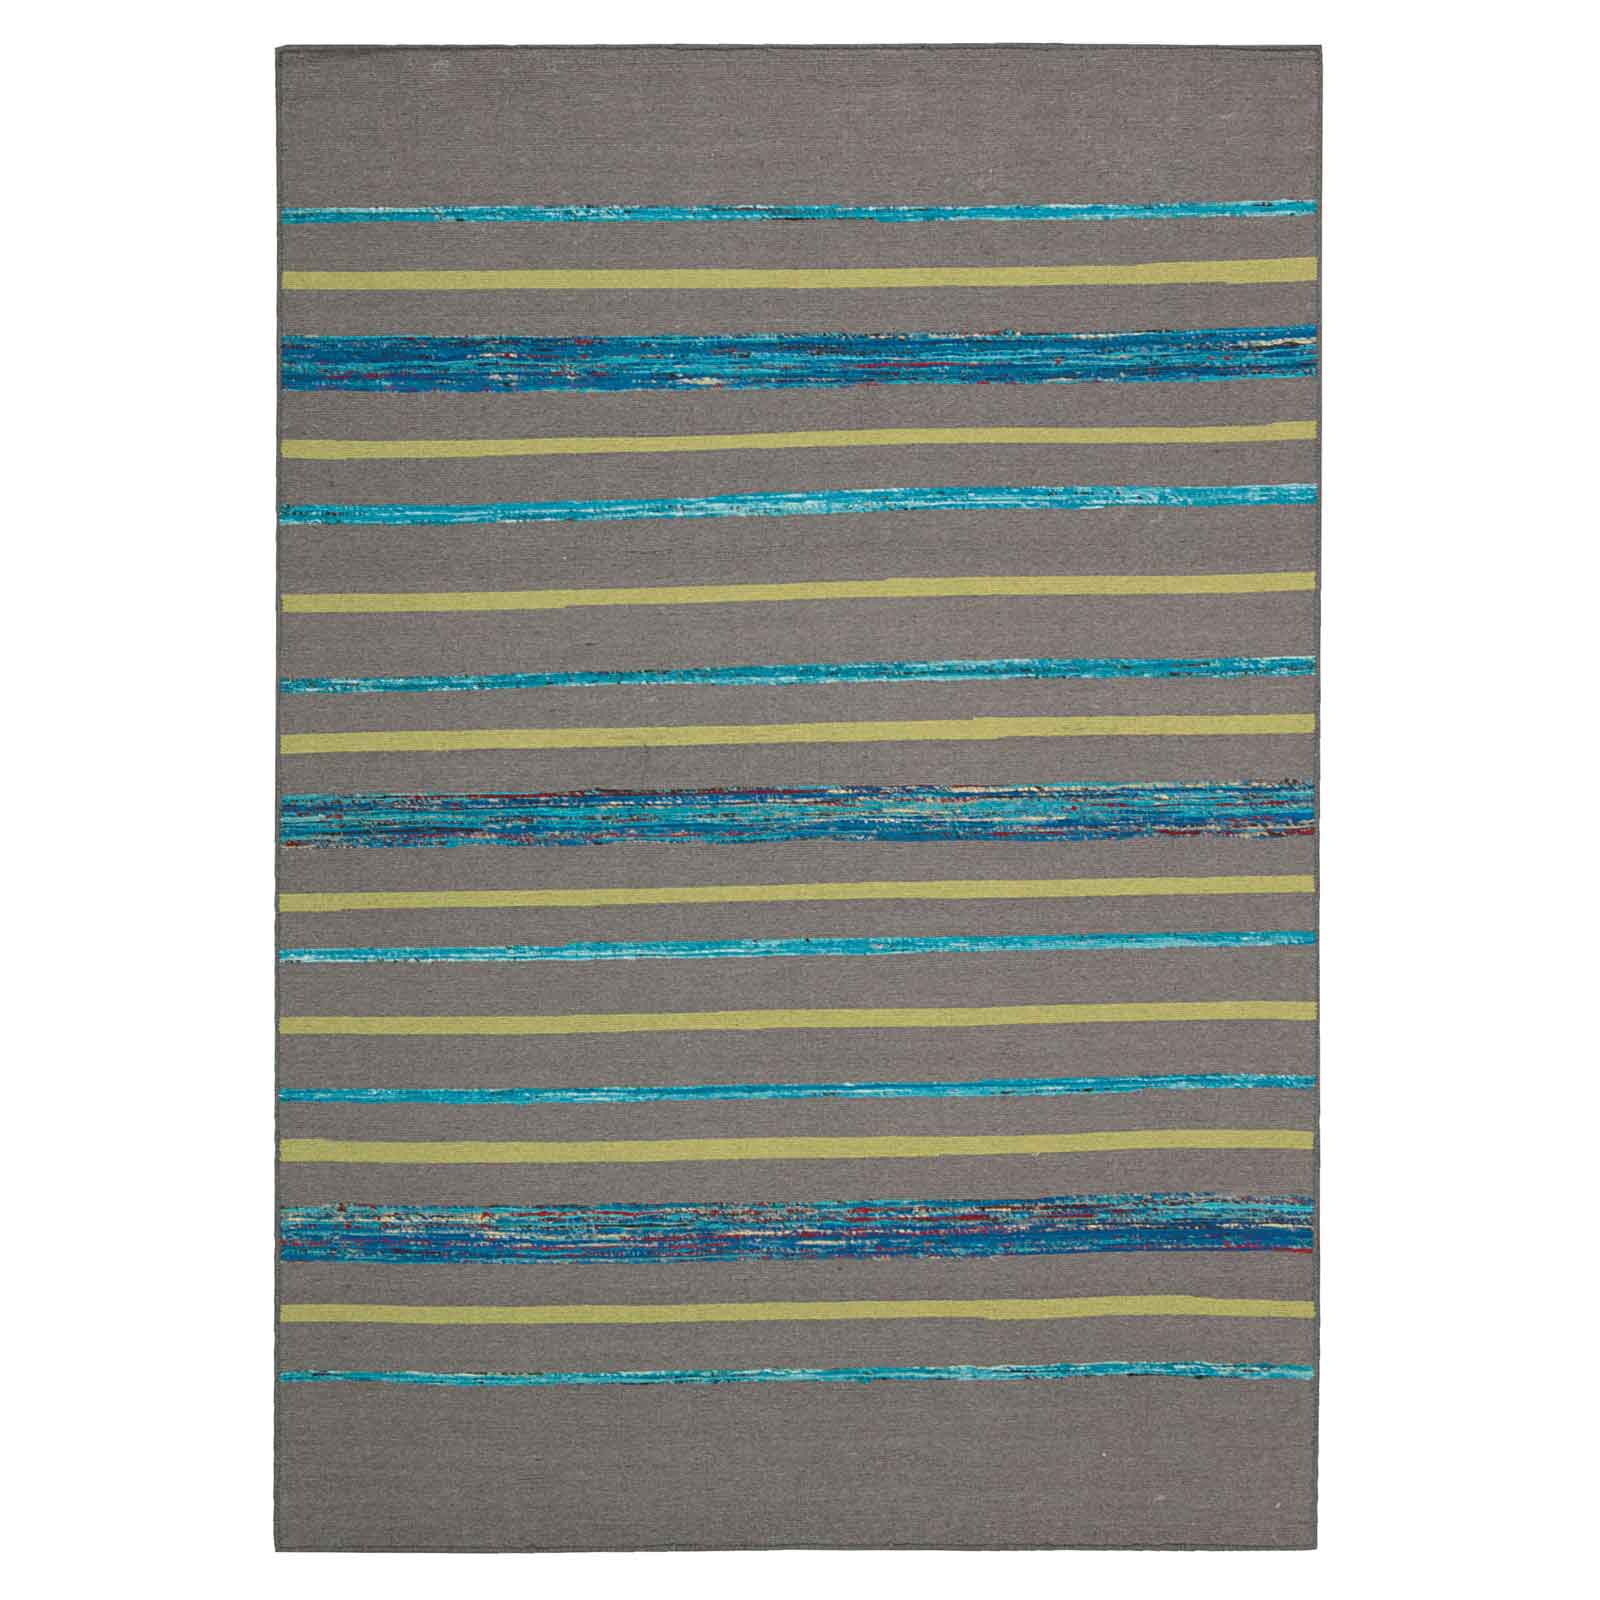 Spectrum Rugs SPE04 in Grey and Turquoise